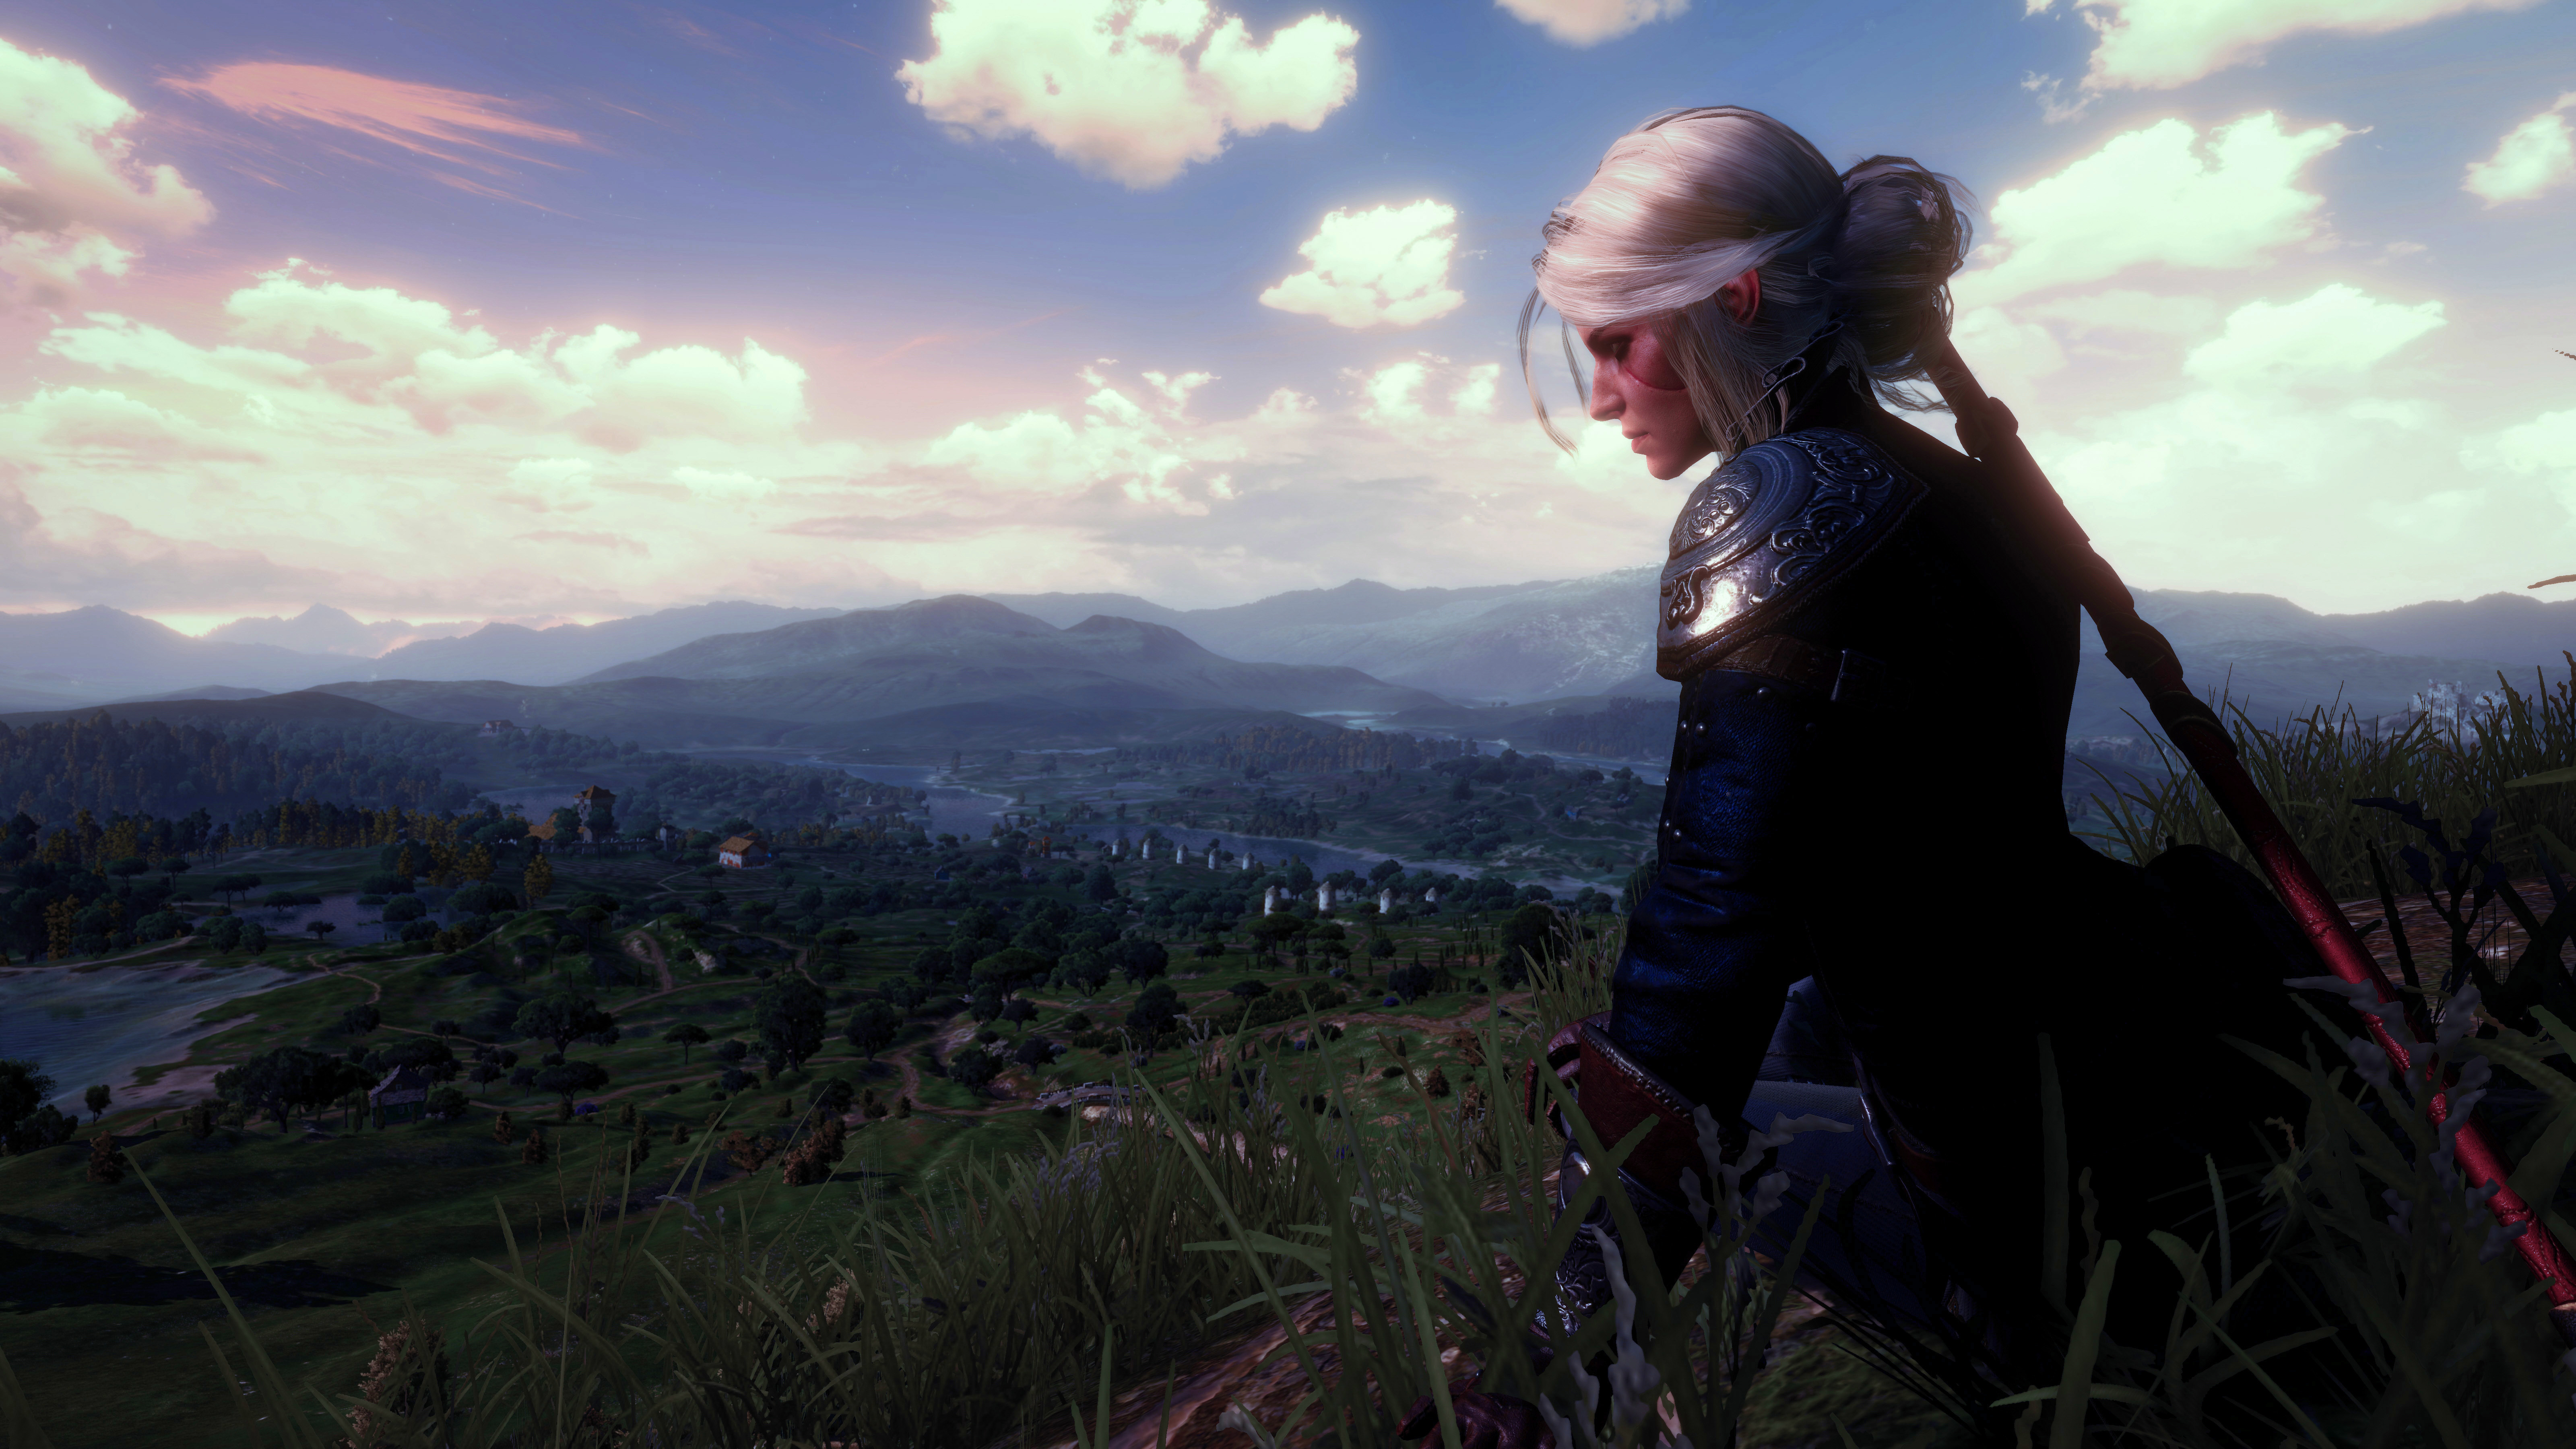 Free Download Ciri Witcher 3 Wild Hunt Wallpaper Hd Games 4k